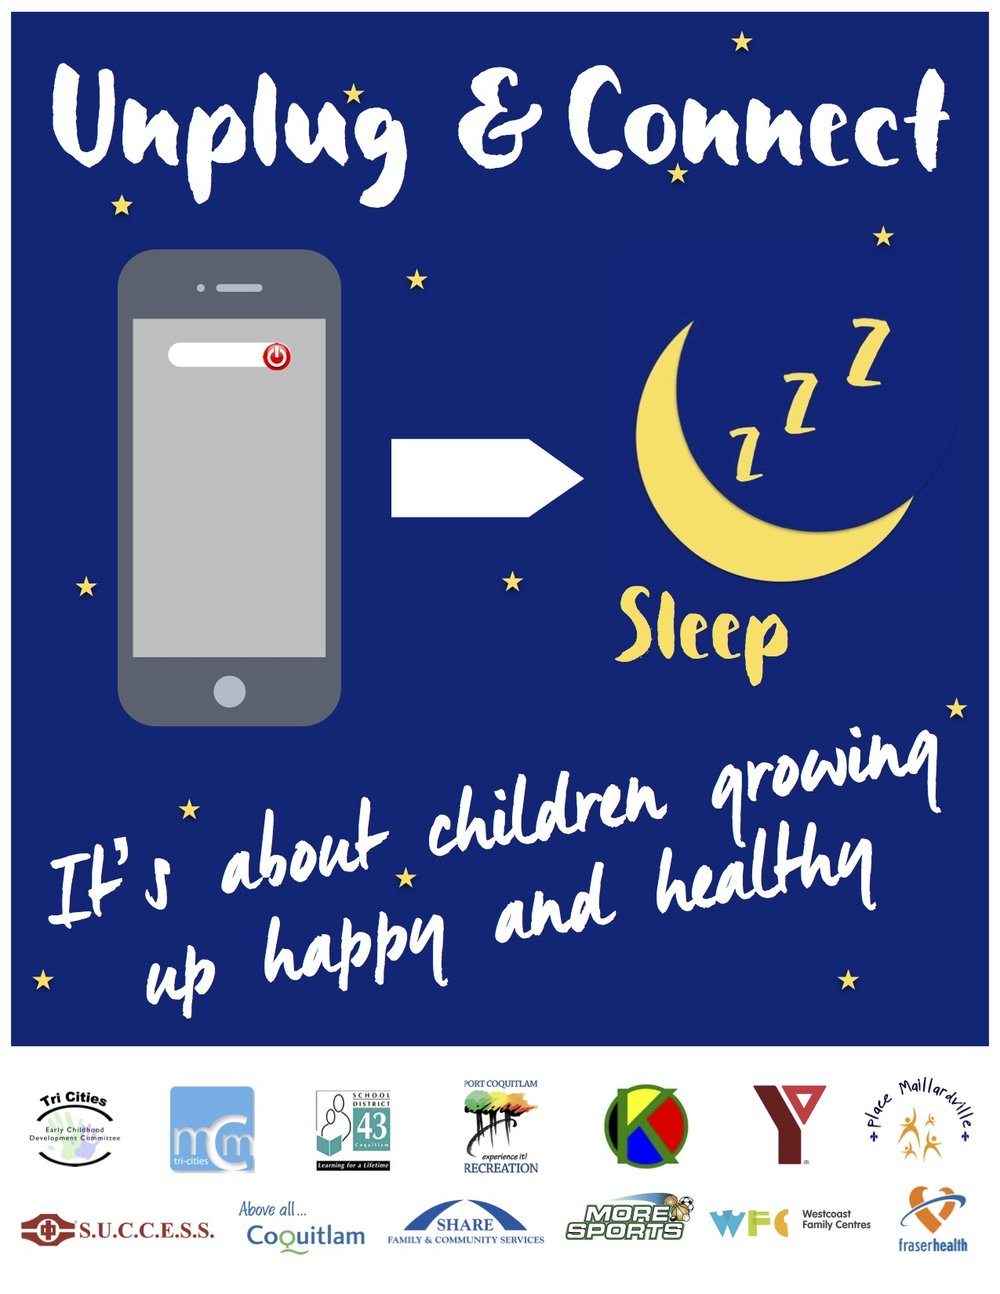 Click  here  to learn more about the importance of connecting to sleep.